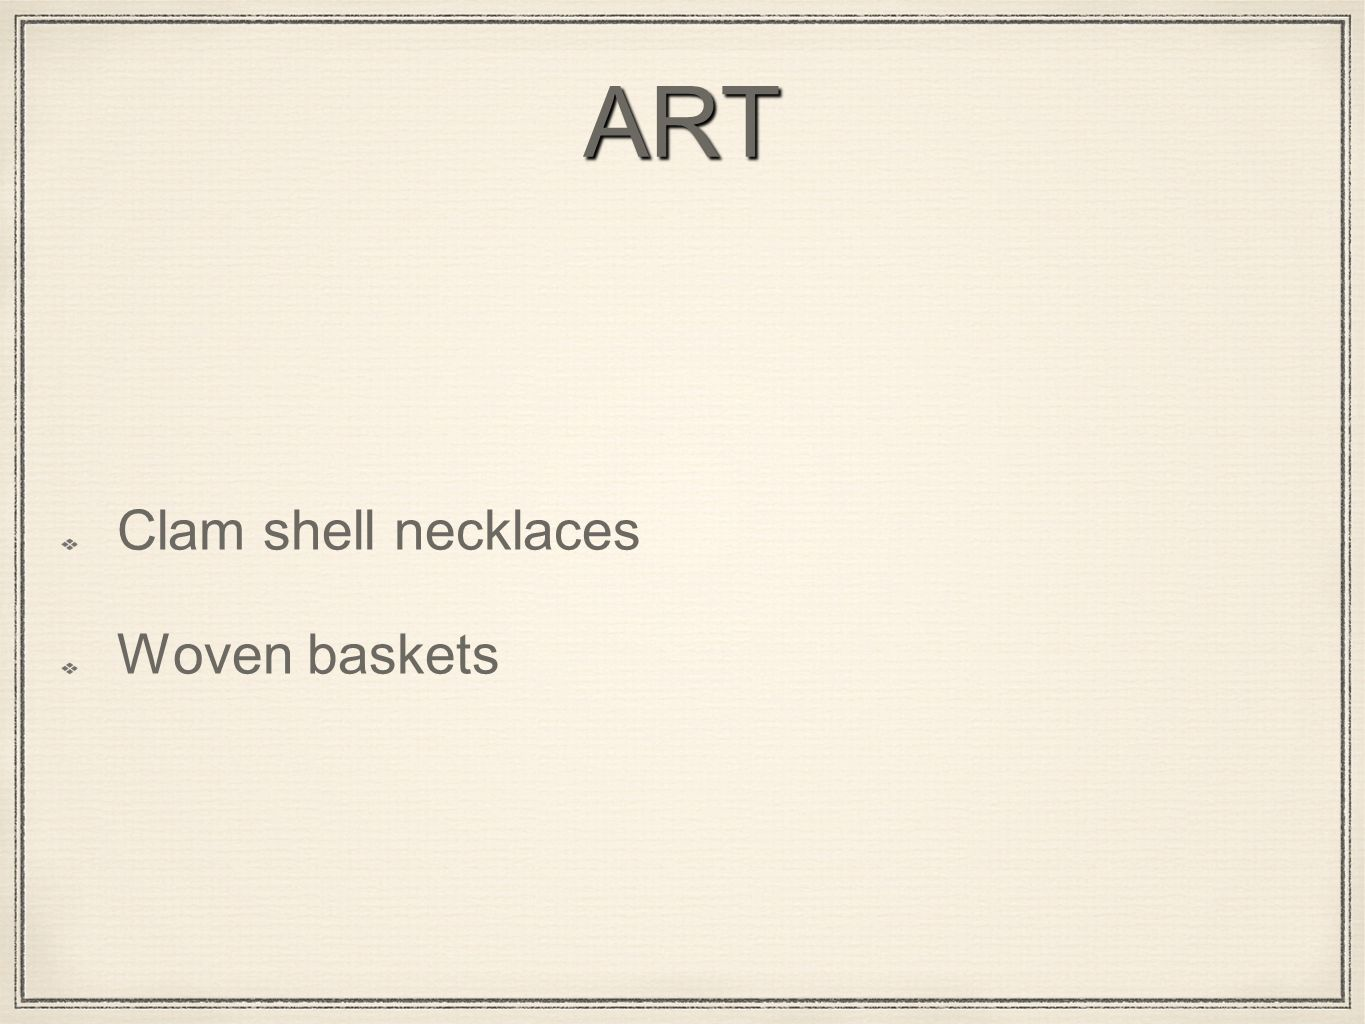 ART Clam shell necklaces Woven baskets